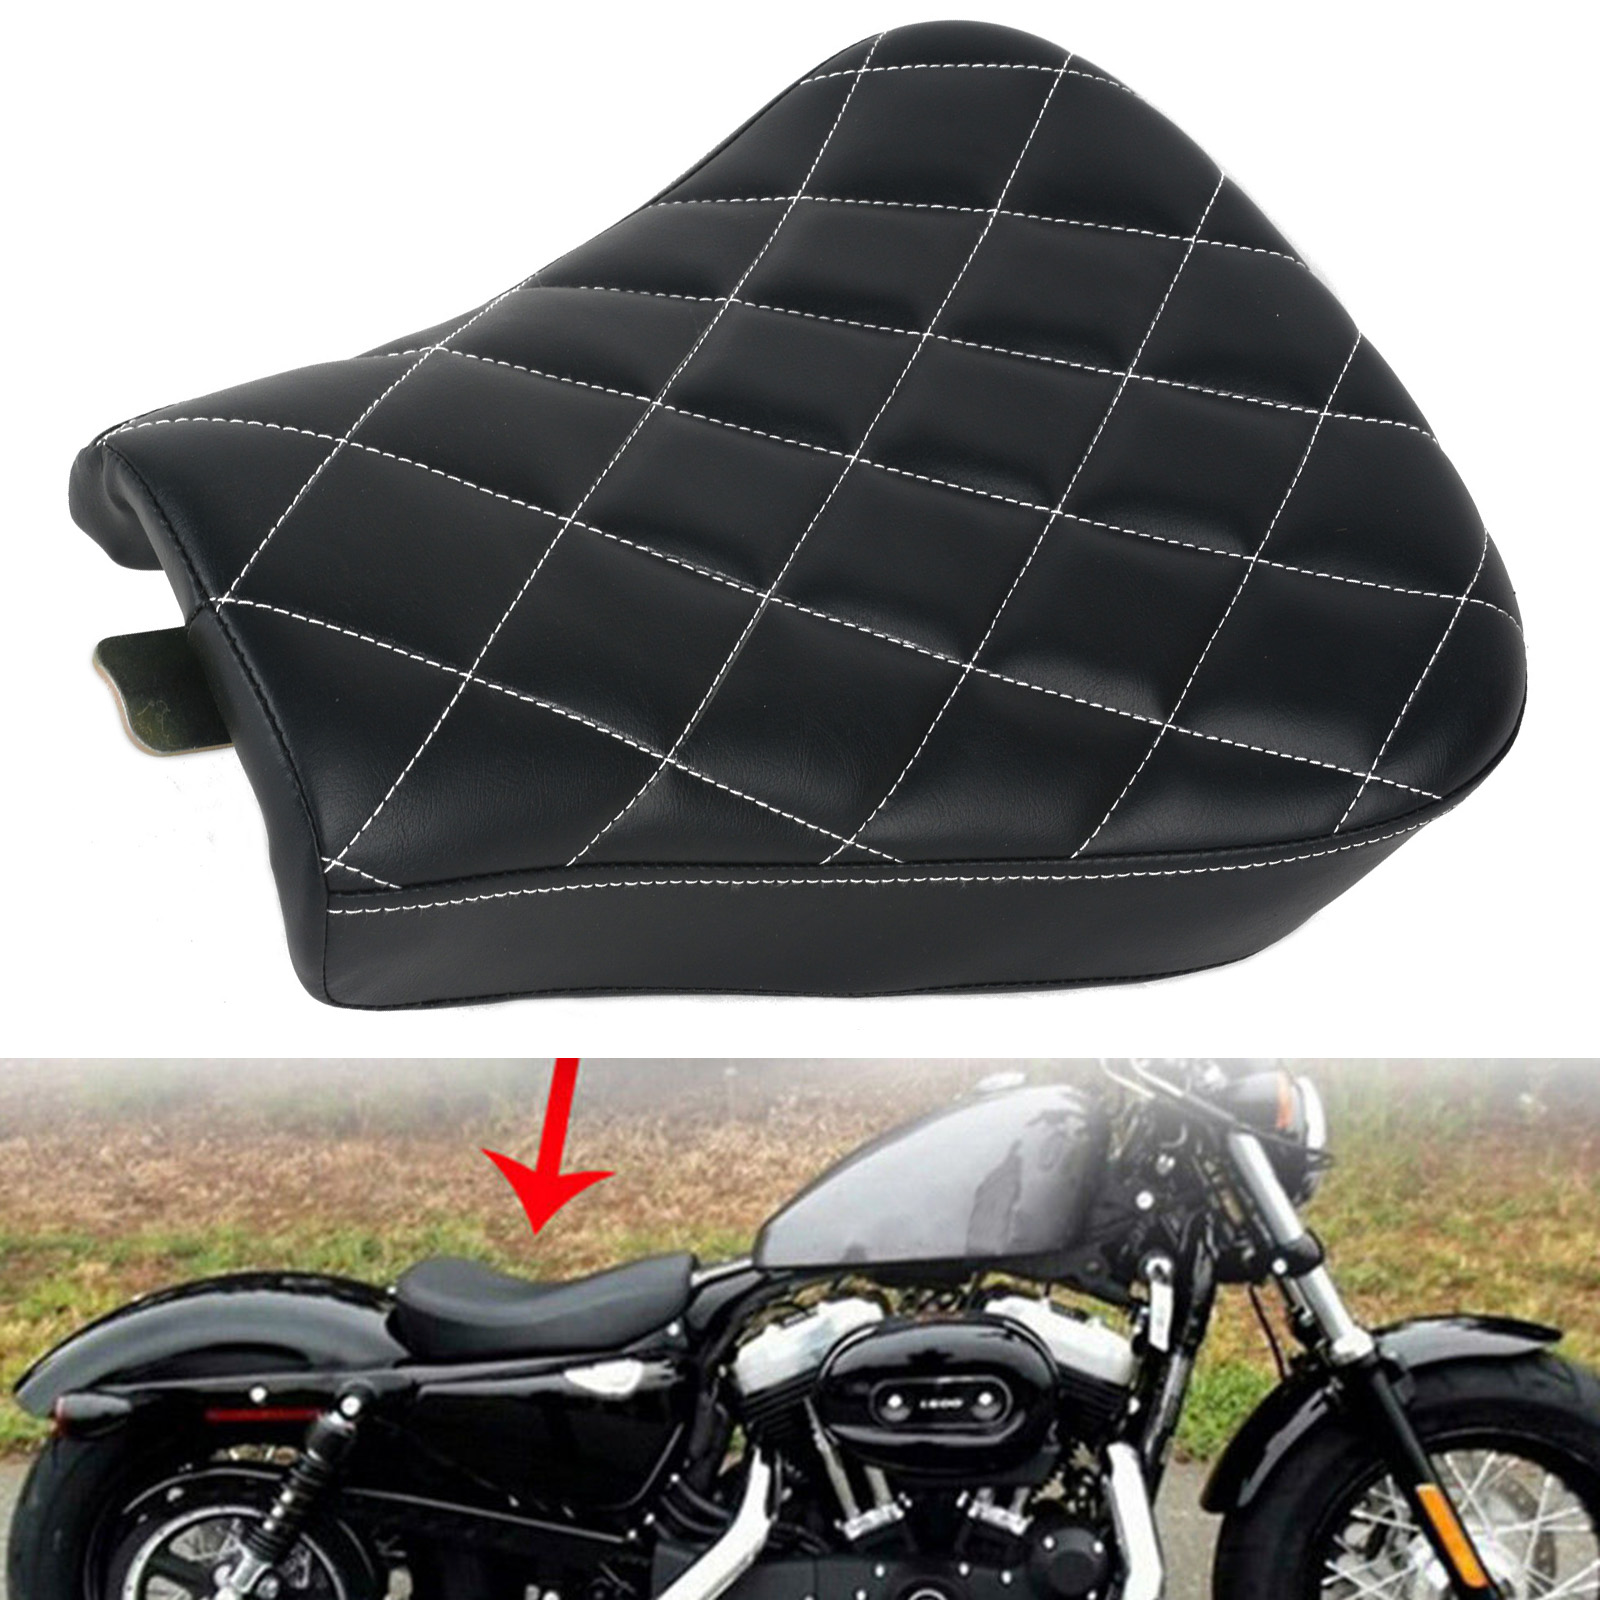 New Motorcycle Black Synthetic Leather Grid Shape Front Driver Solo Seat Cushion For Harley Sportster Forty Eight XL1200 883 48